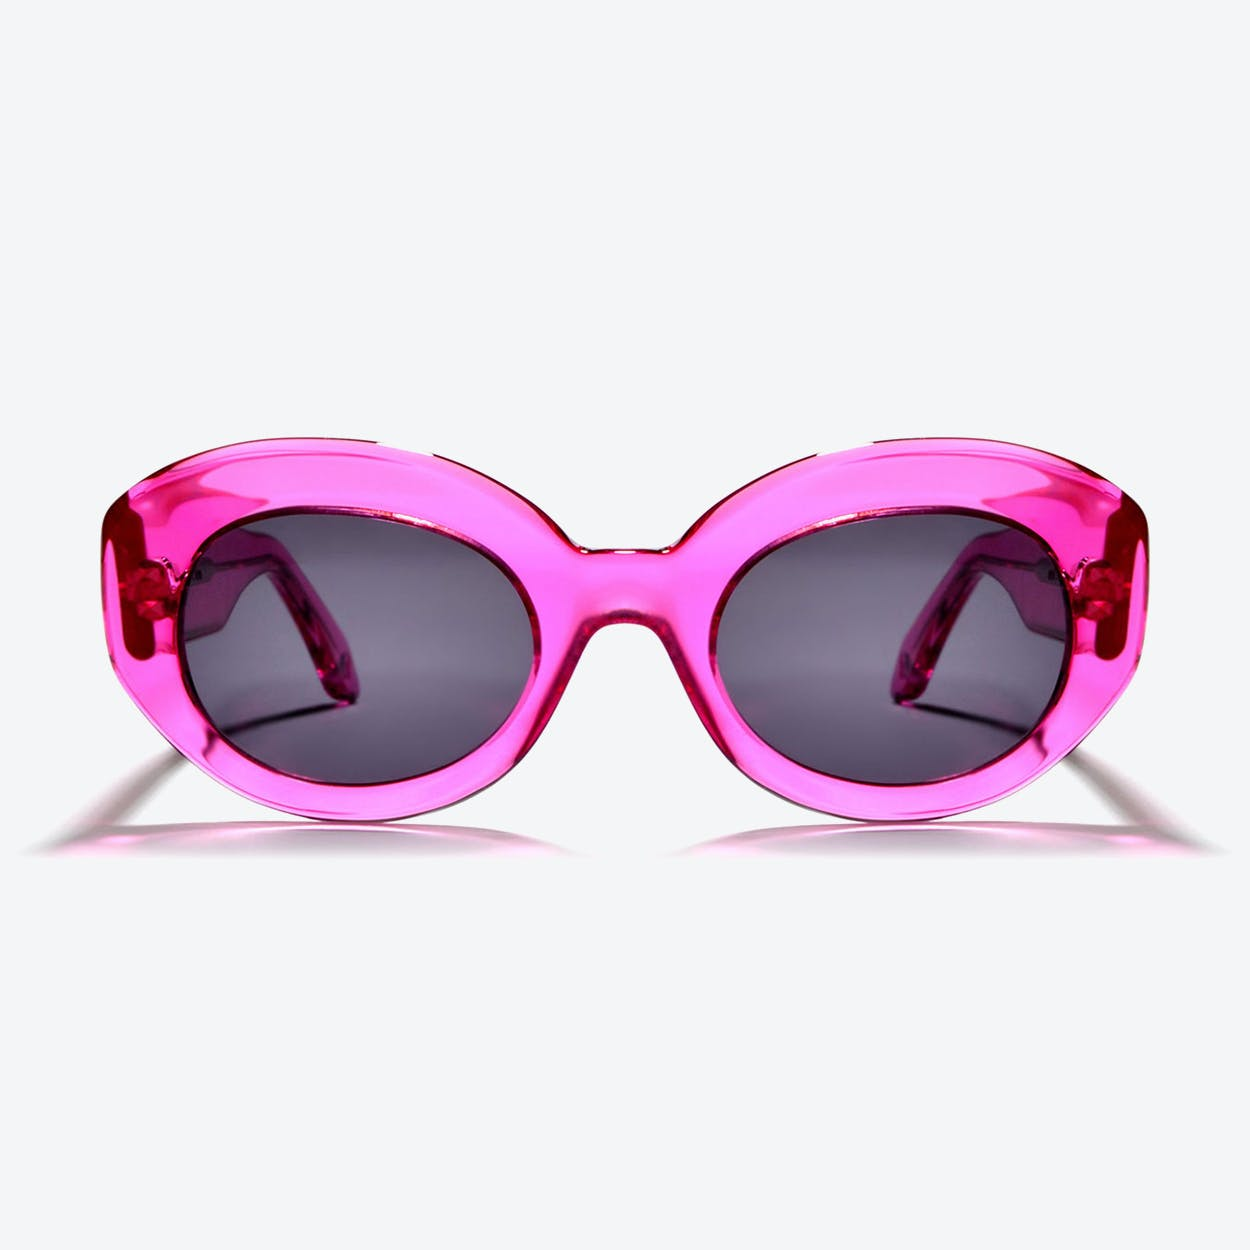 Ophelia Sunglasses in Hot Pink